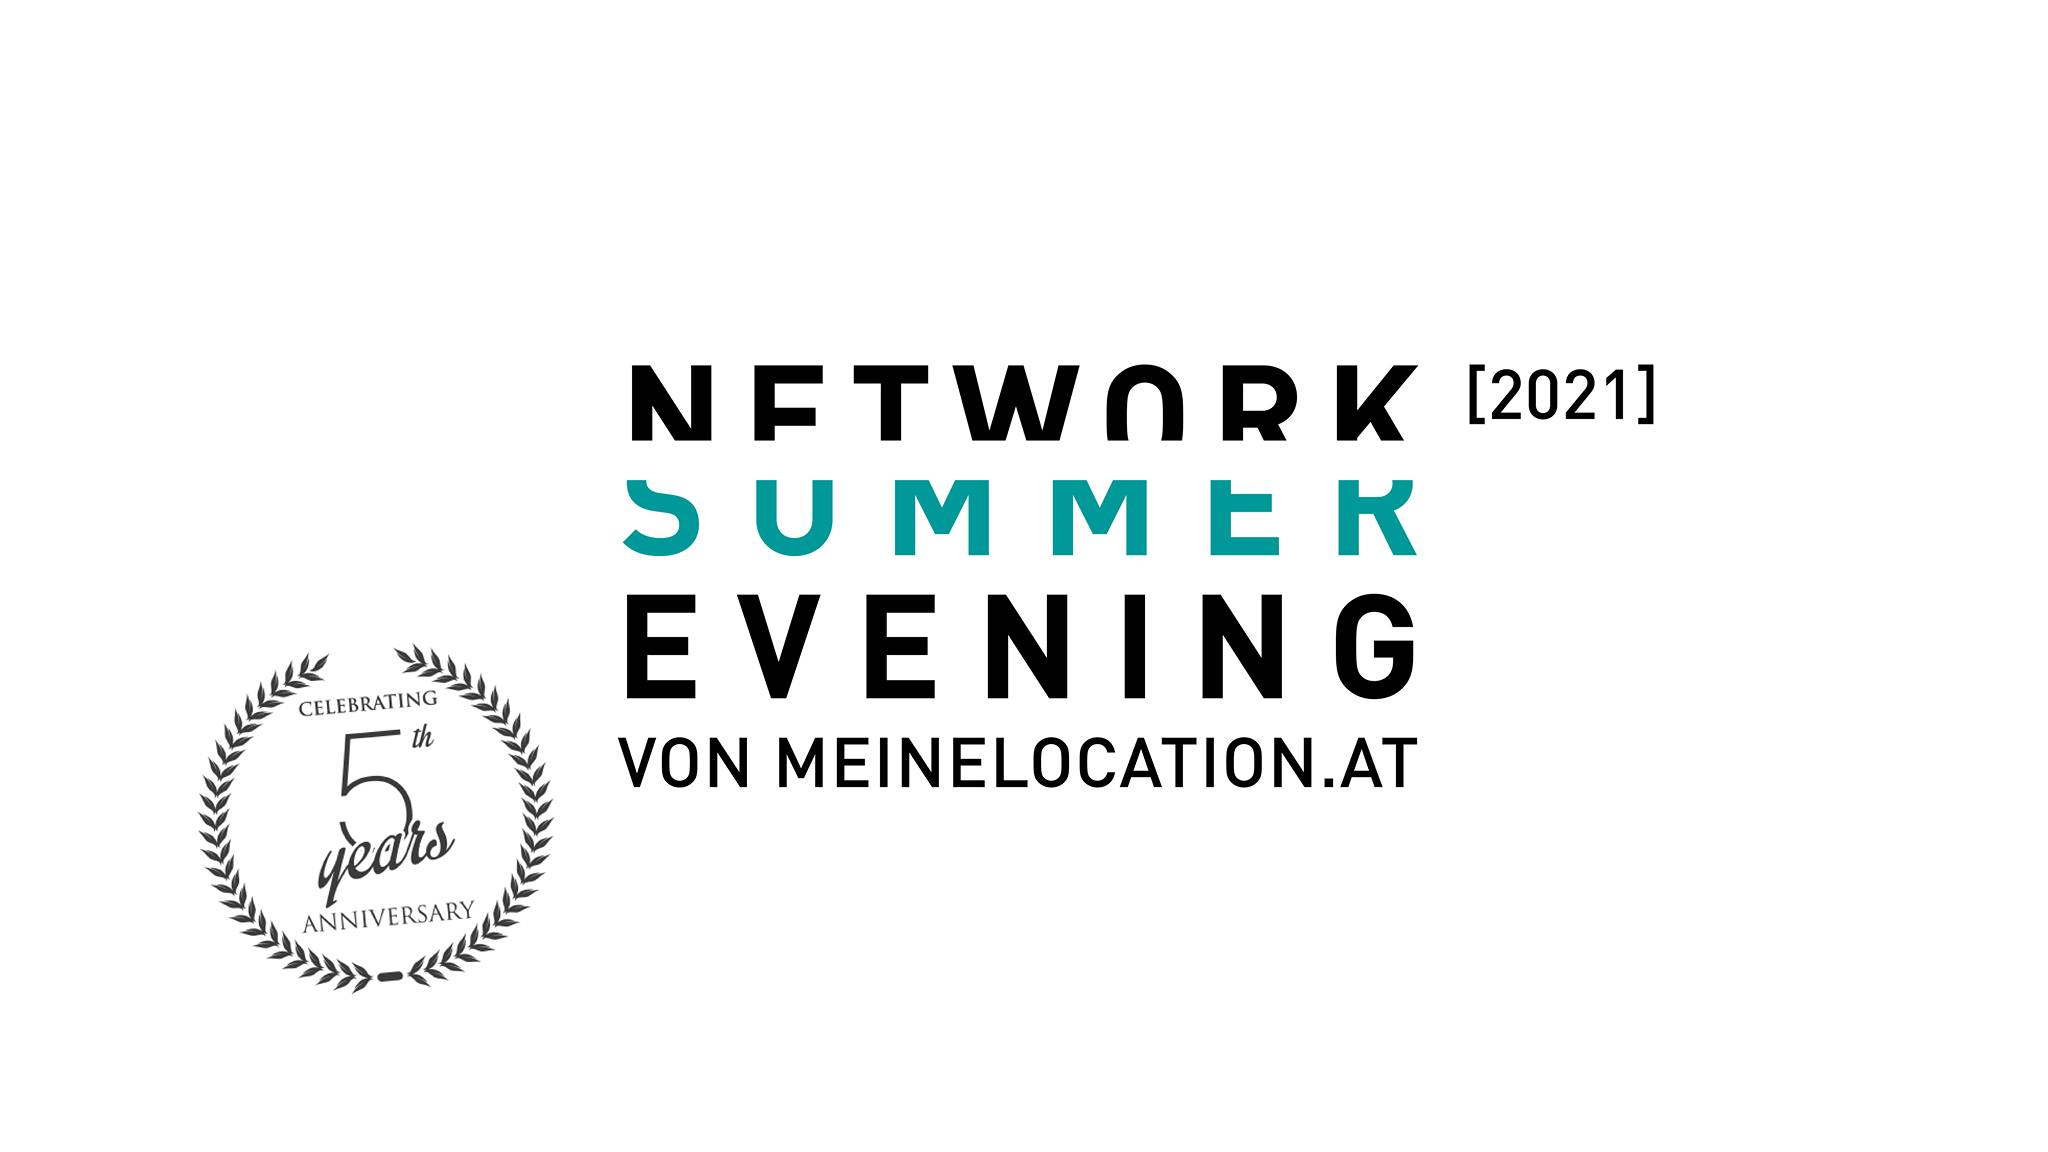 Network Summer Evening 2021